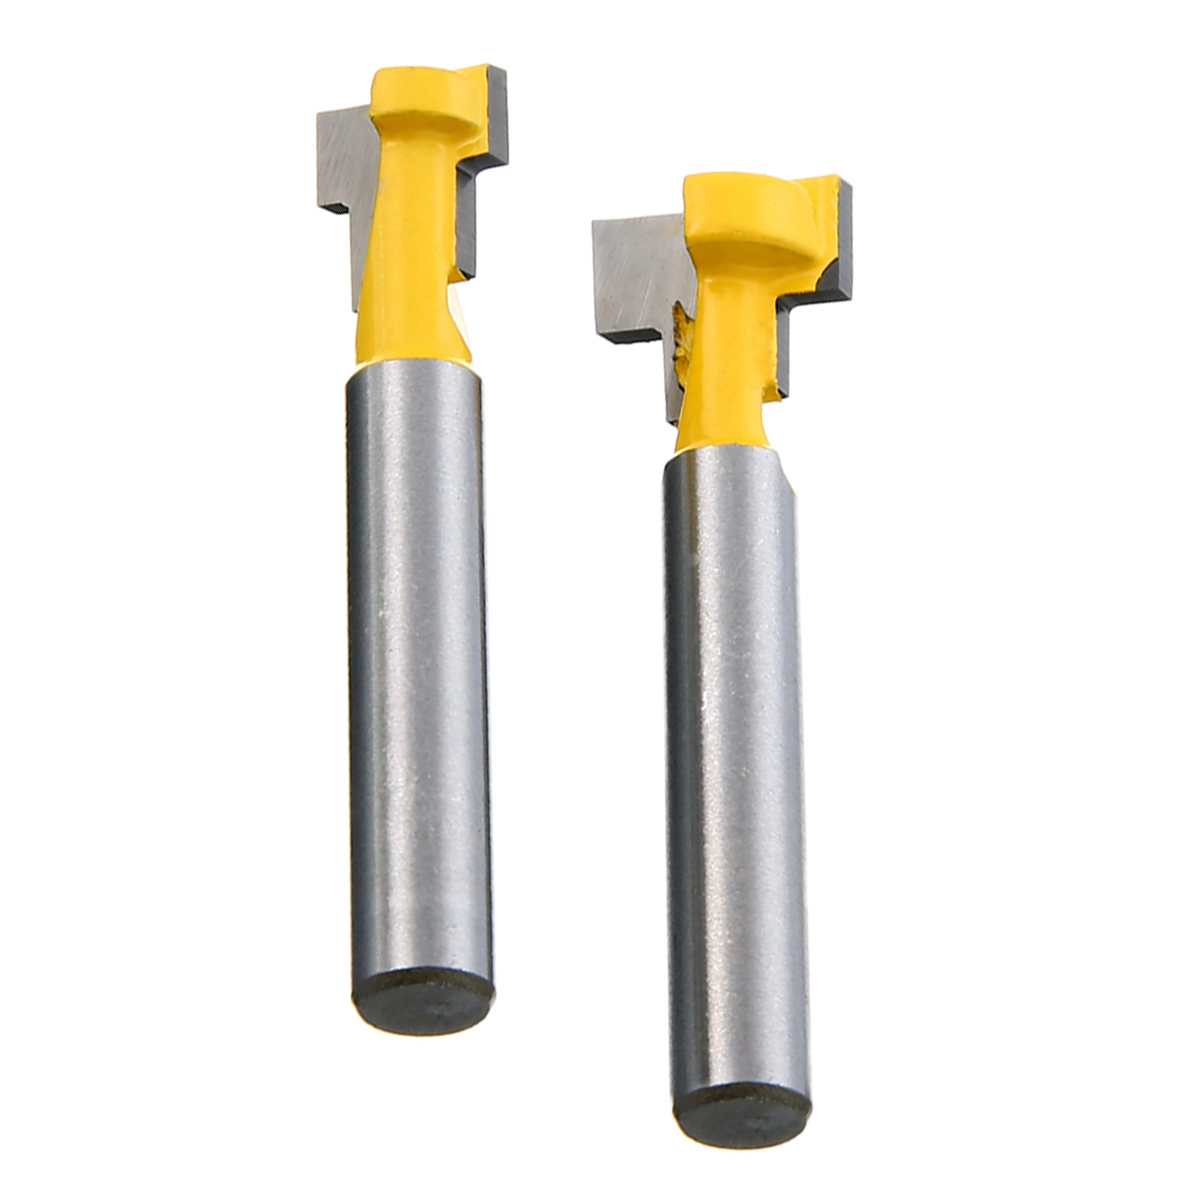 2Pcs 1/4'' Shank T-Slot Cutter Steel Handle 3/8'' & 1/2'' Length Router Bits For Woodworking Tools цены